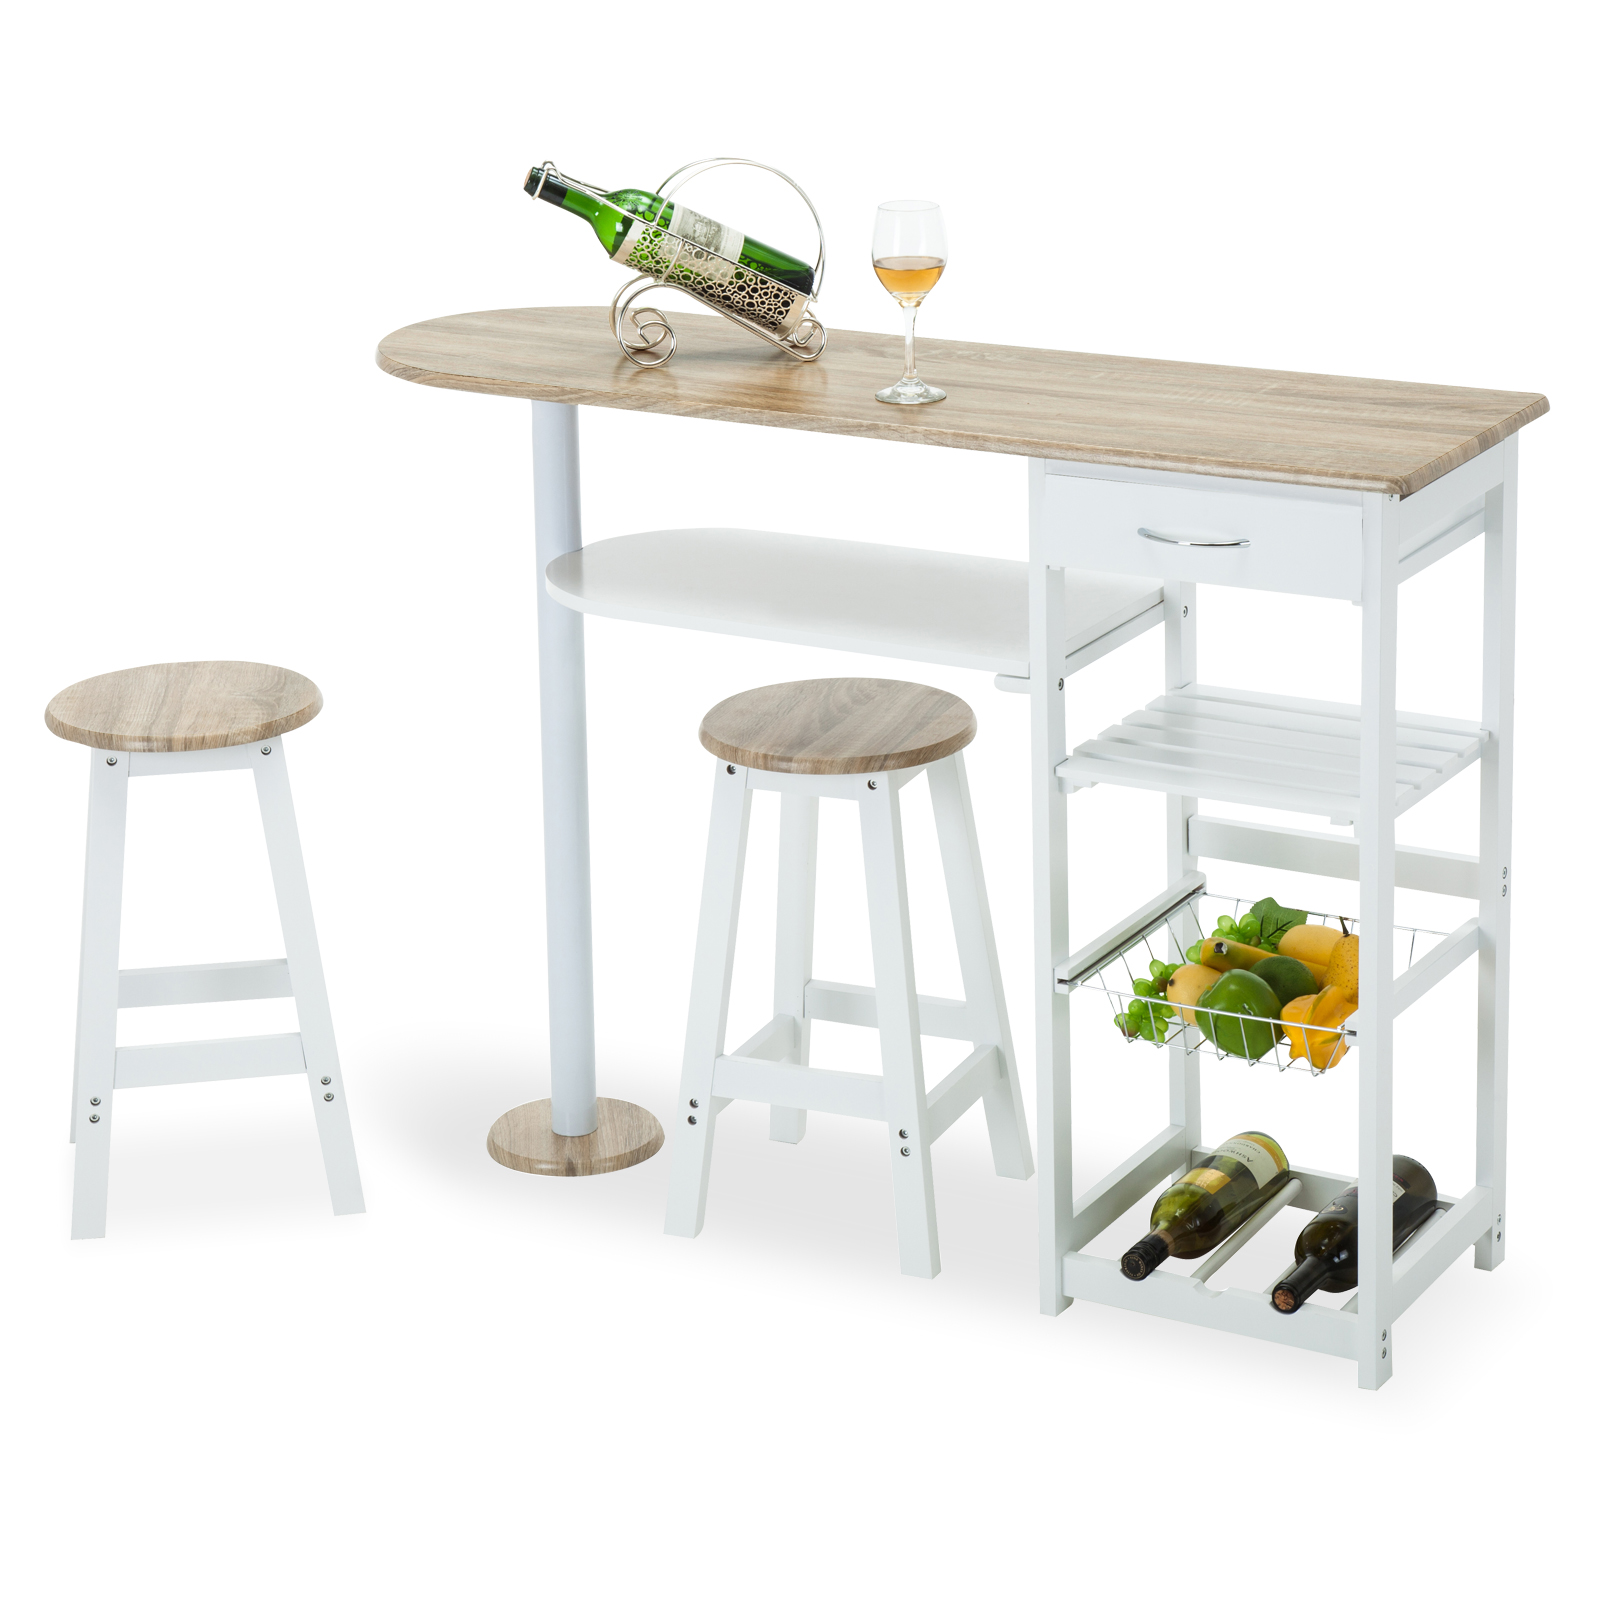 Oak white kitchen island cart trolley dining table storage for Kitchen island dining table